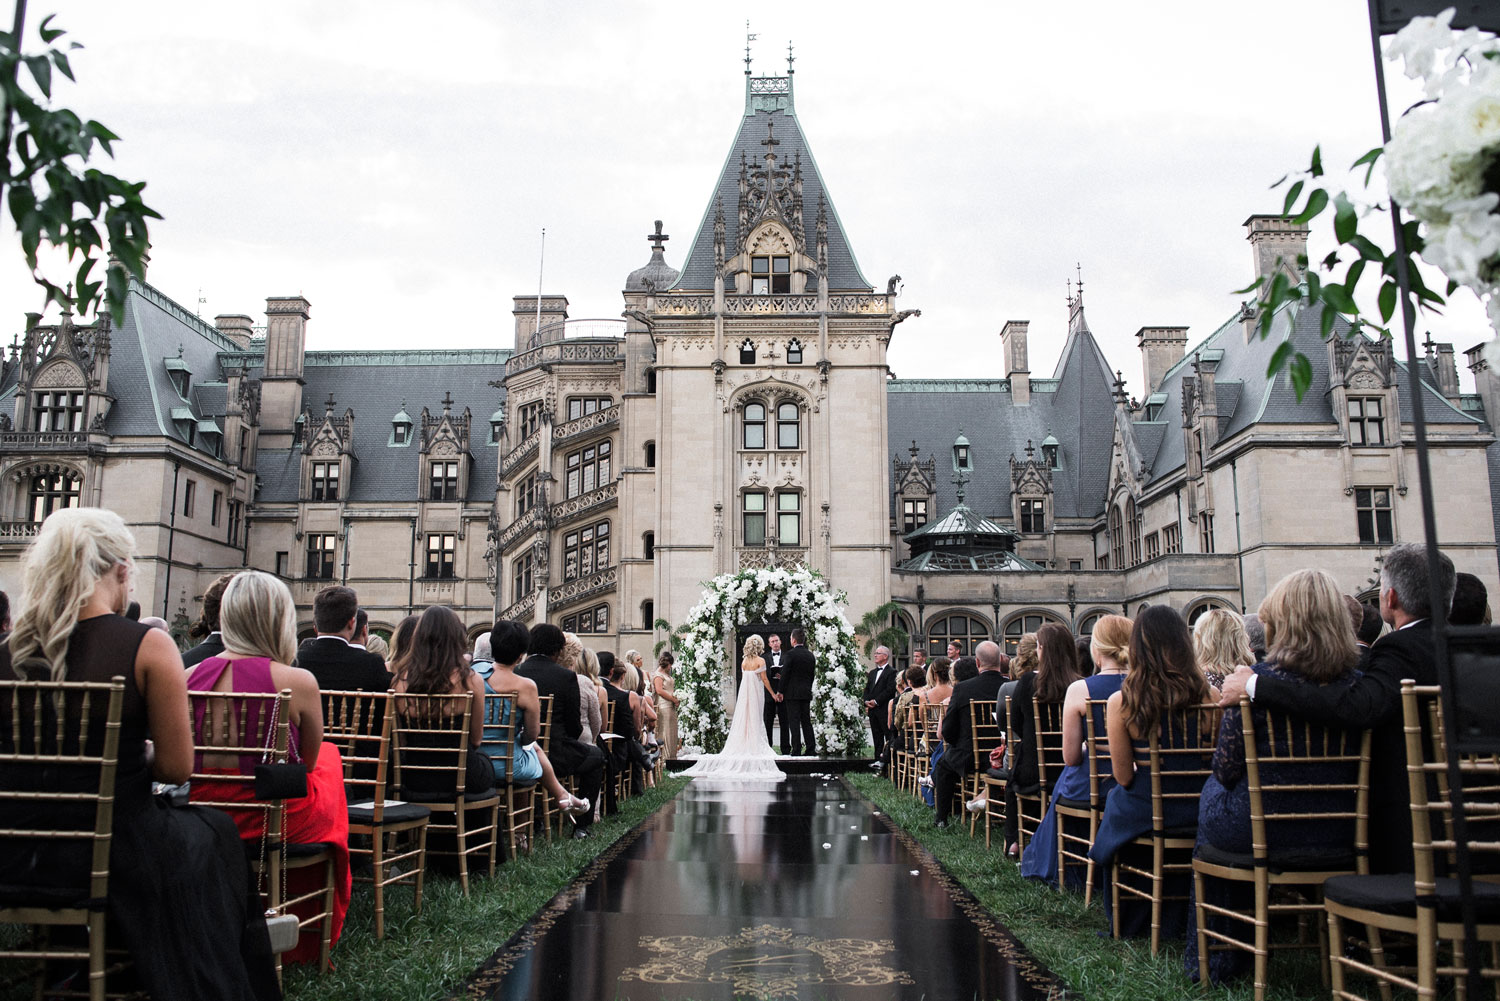 Wedding ceremony on lawn at biltmore estate castle wedding venue